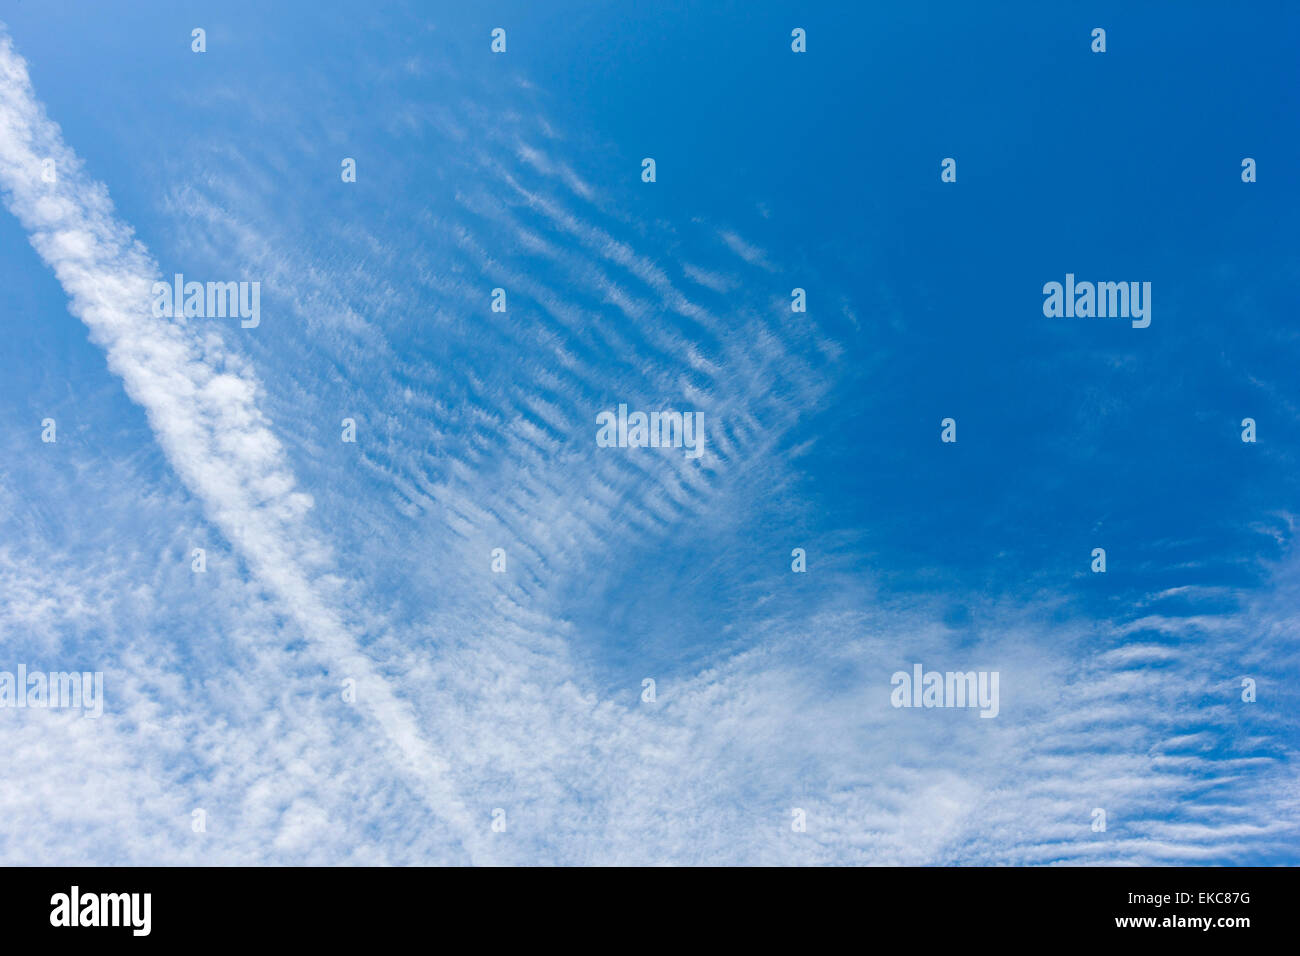 Cloud, Cirrocumulus clouds, fluffy clouds, high altitude - Stock Image